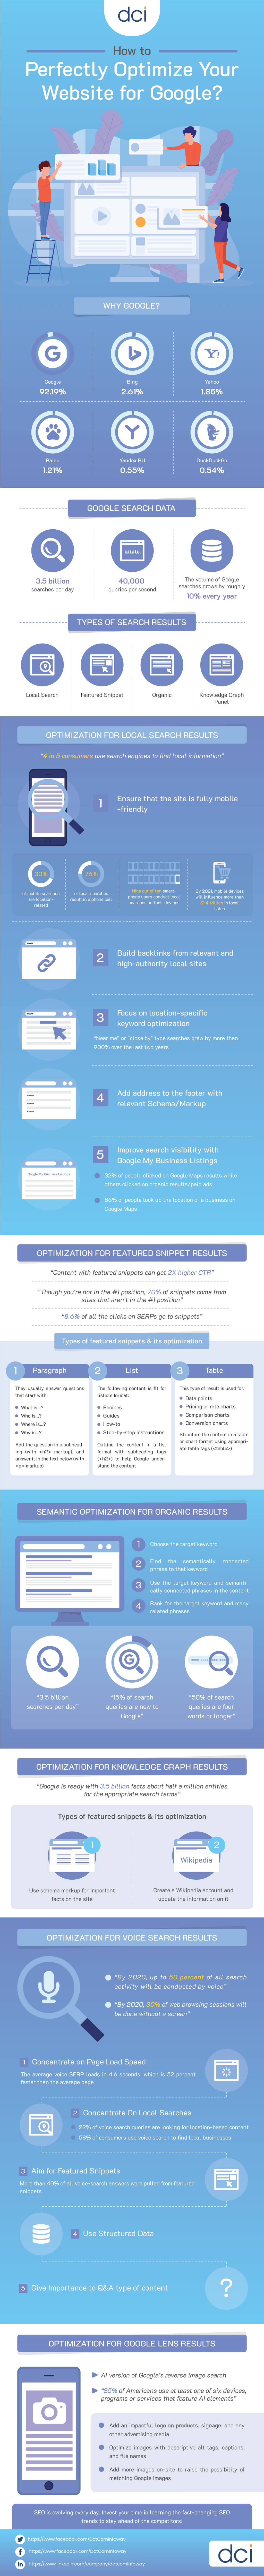 Infographic: How to Perfectly Optimize Your Website for Google?